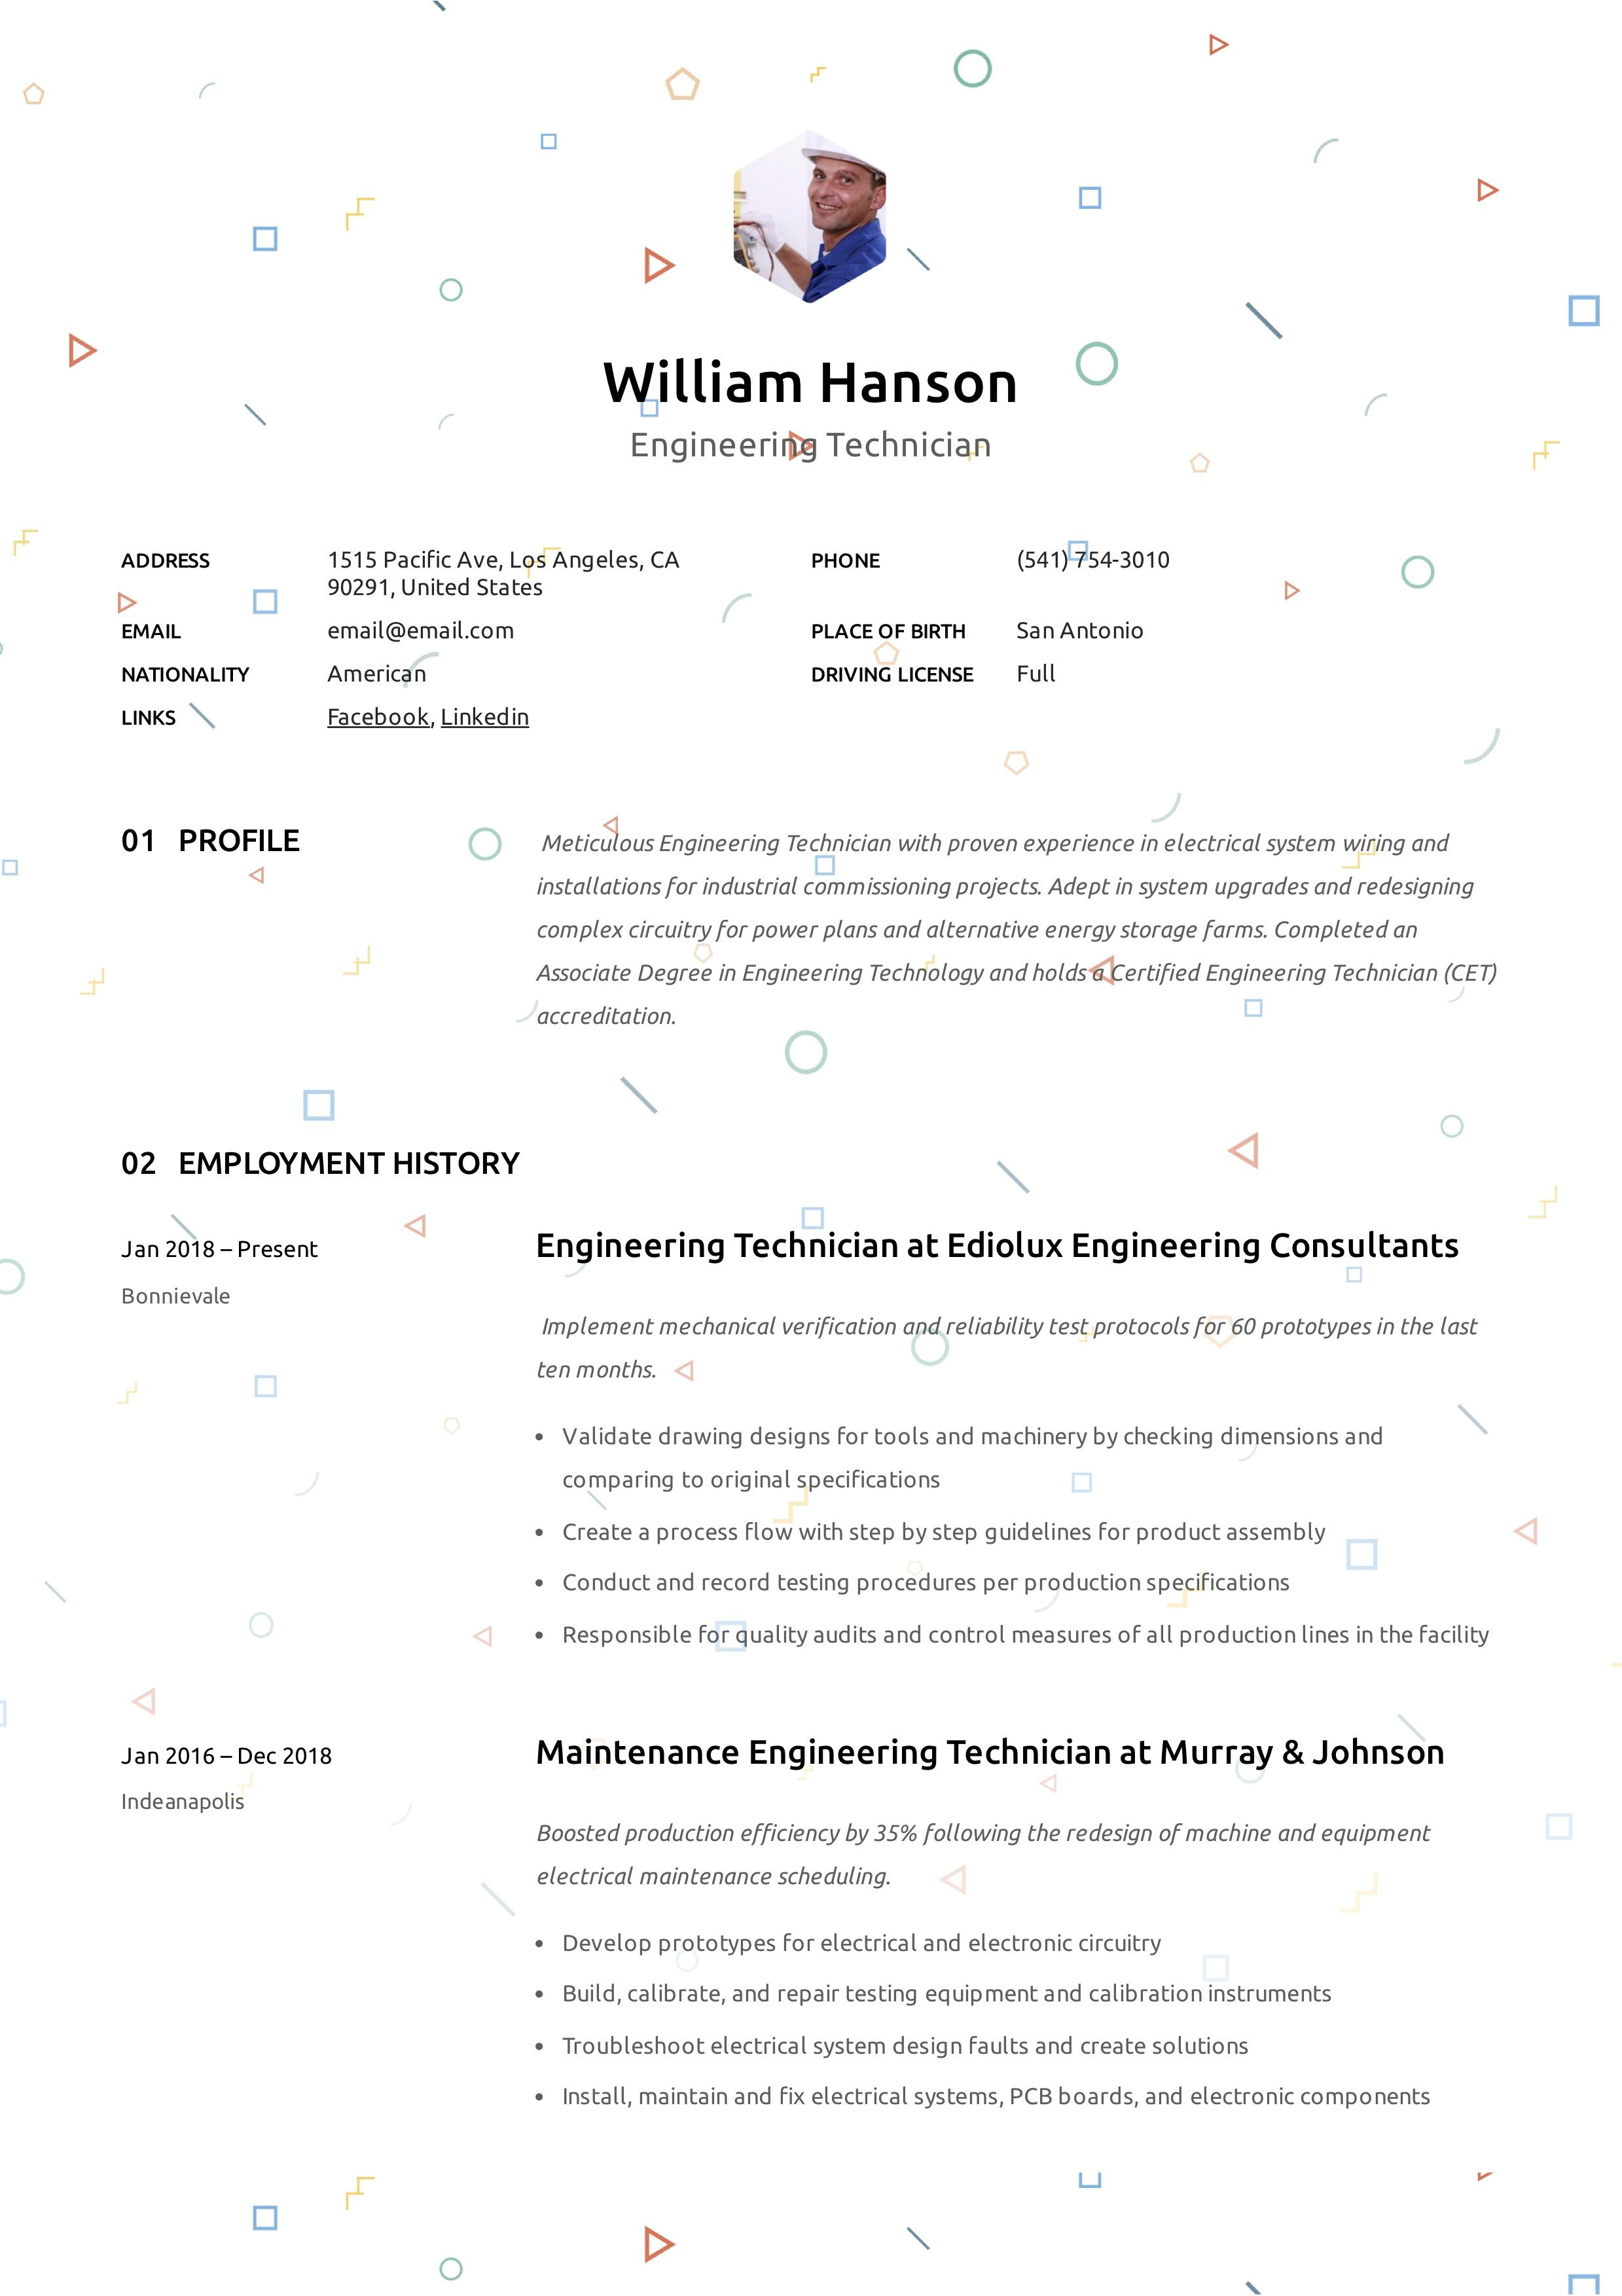 Engineering Technician Resume Sample Guided Writing Technician Resume Guide